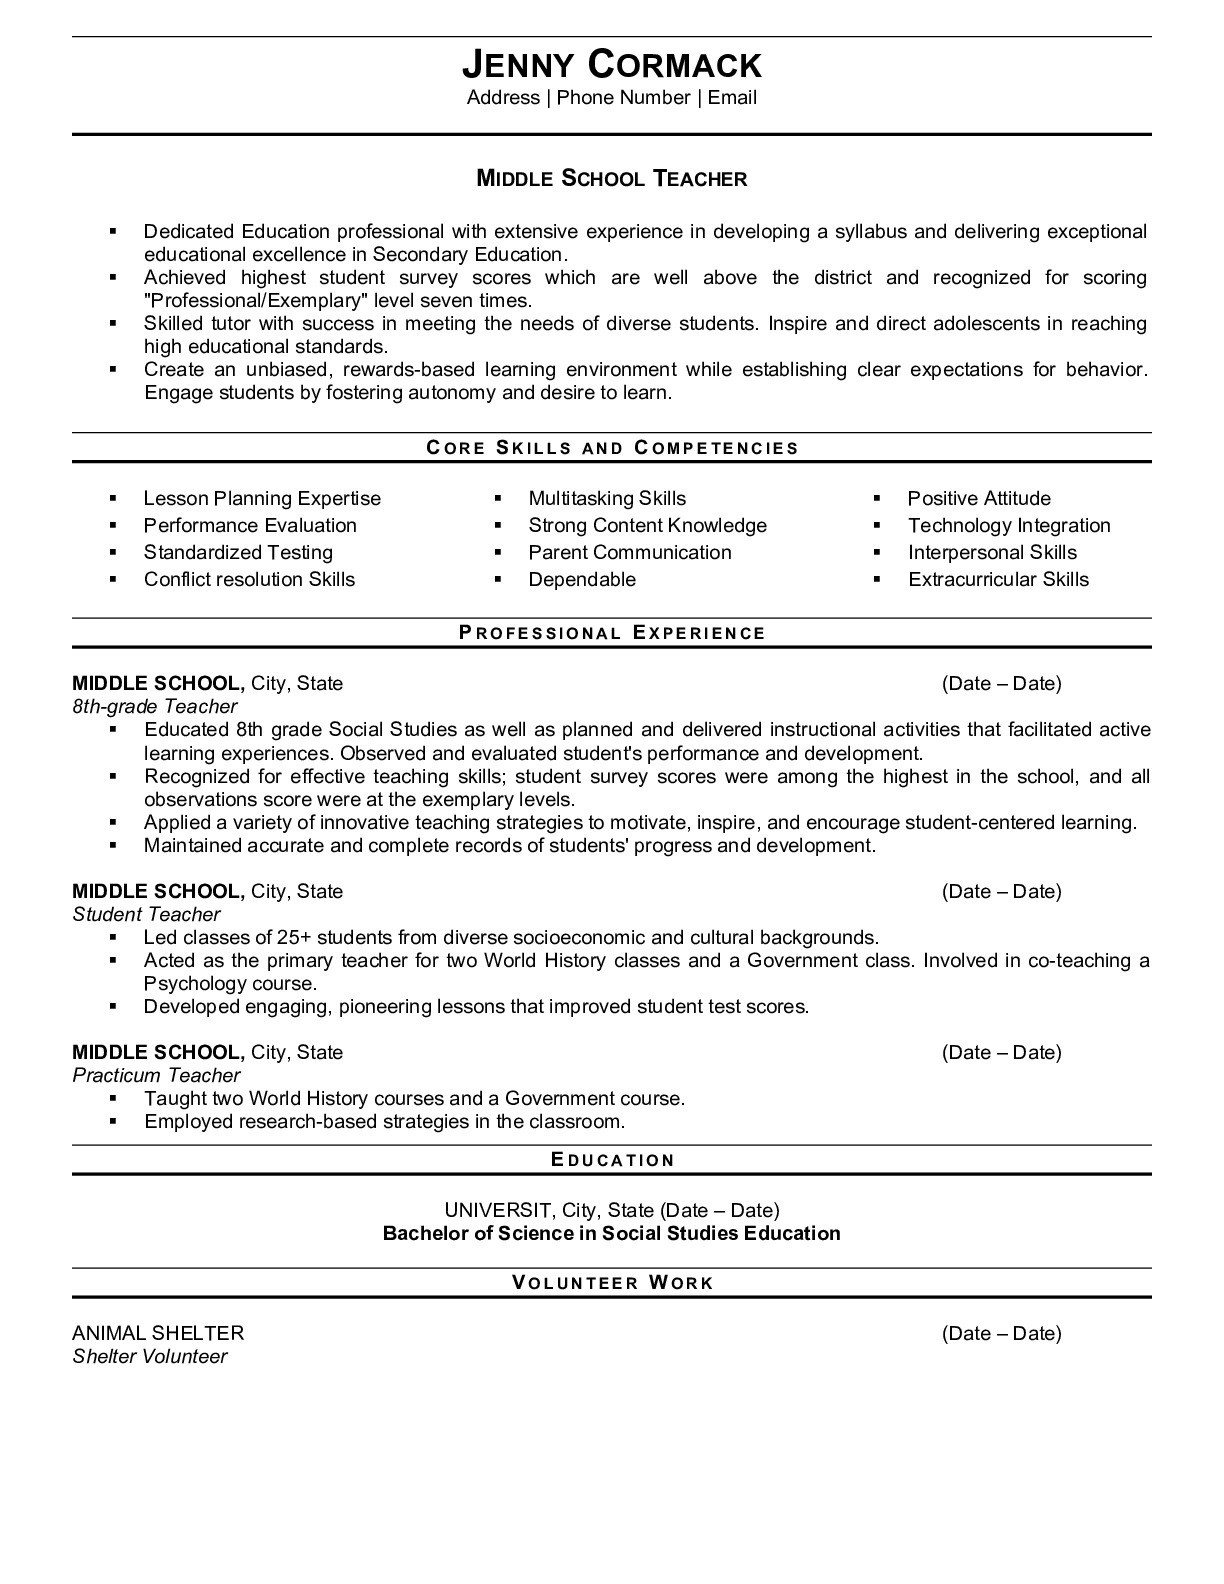 Resume for Middle School Teacher